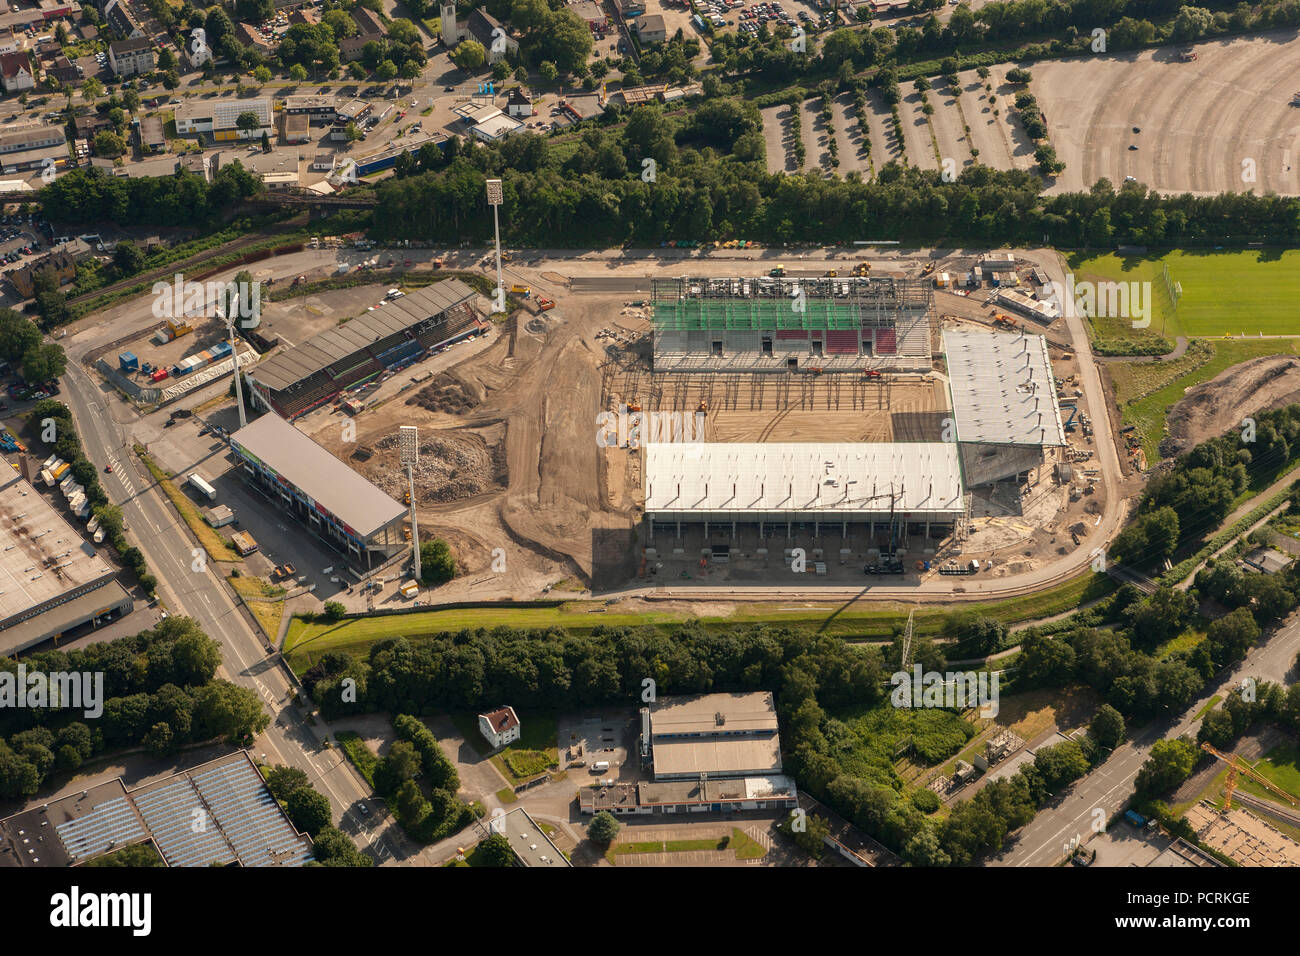 Aerial photo, Georg Melches Stadium, Rot-Weiss-Essen RWE Stadium, Essen, Ruhr area, North Rhine Westphalia, Germany, Europe - Stock Image